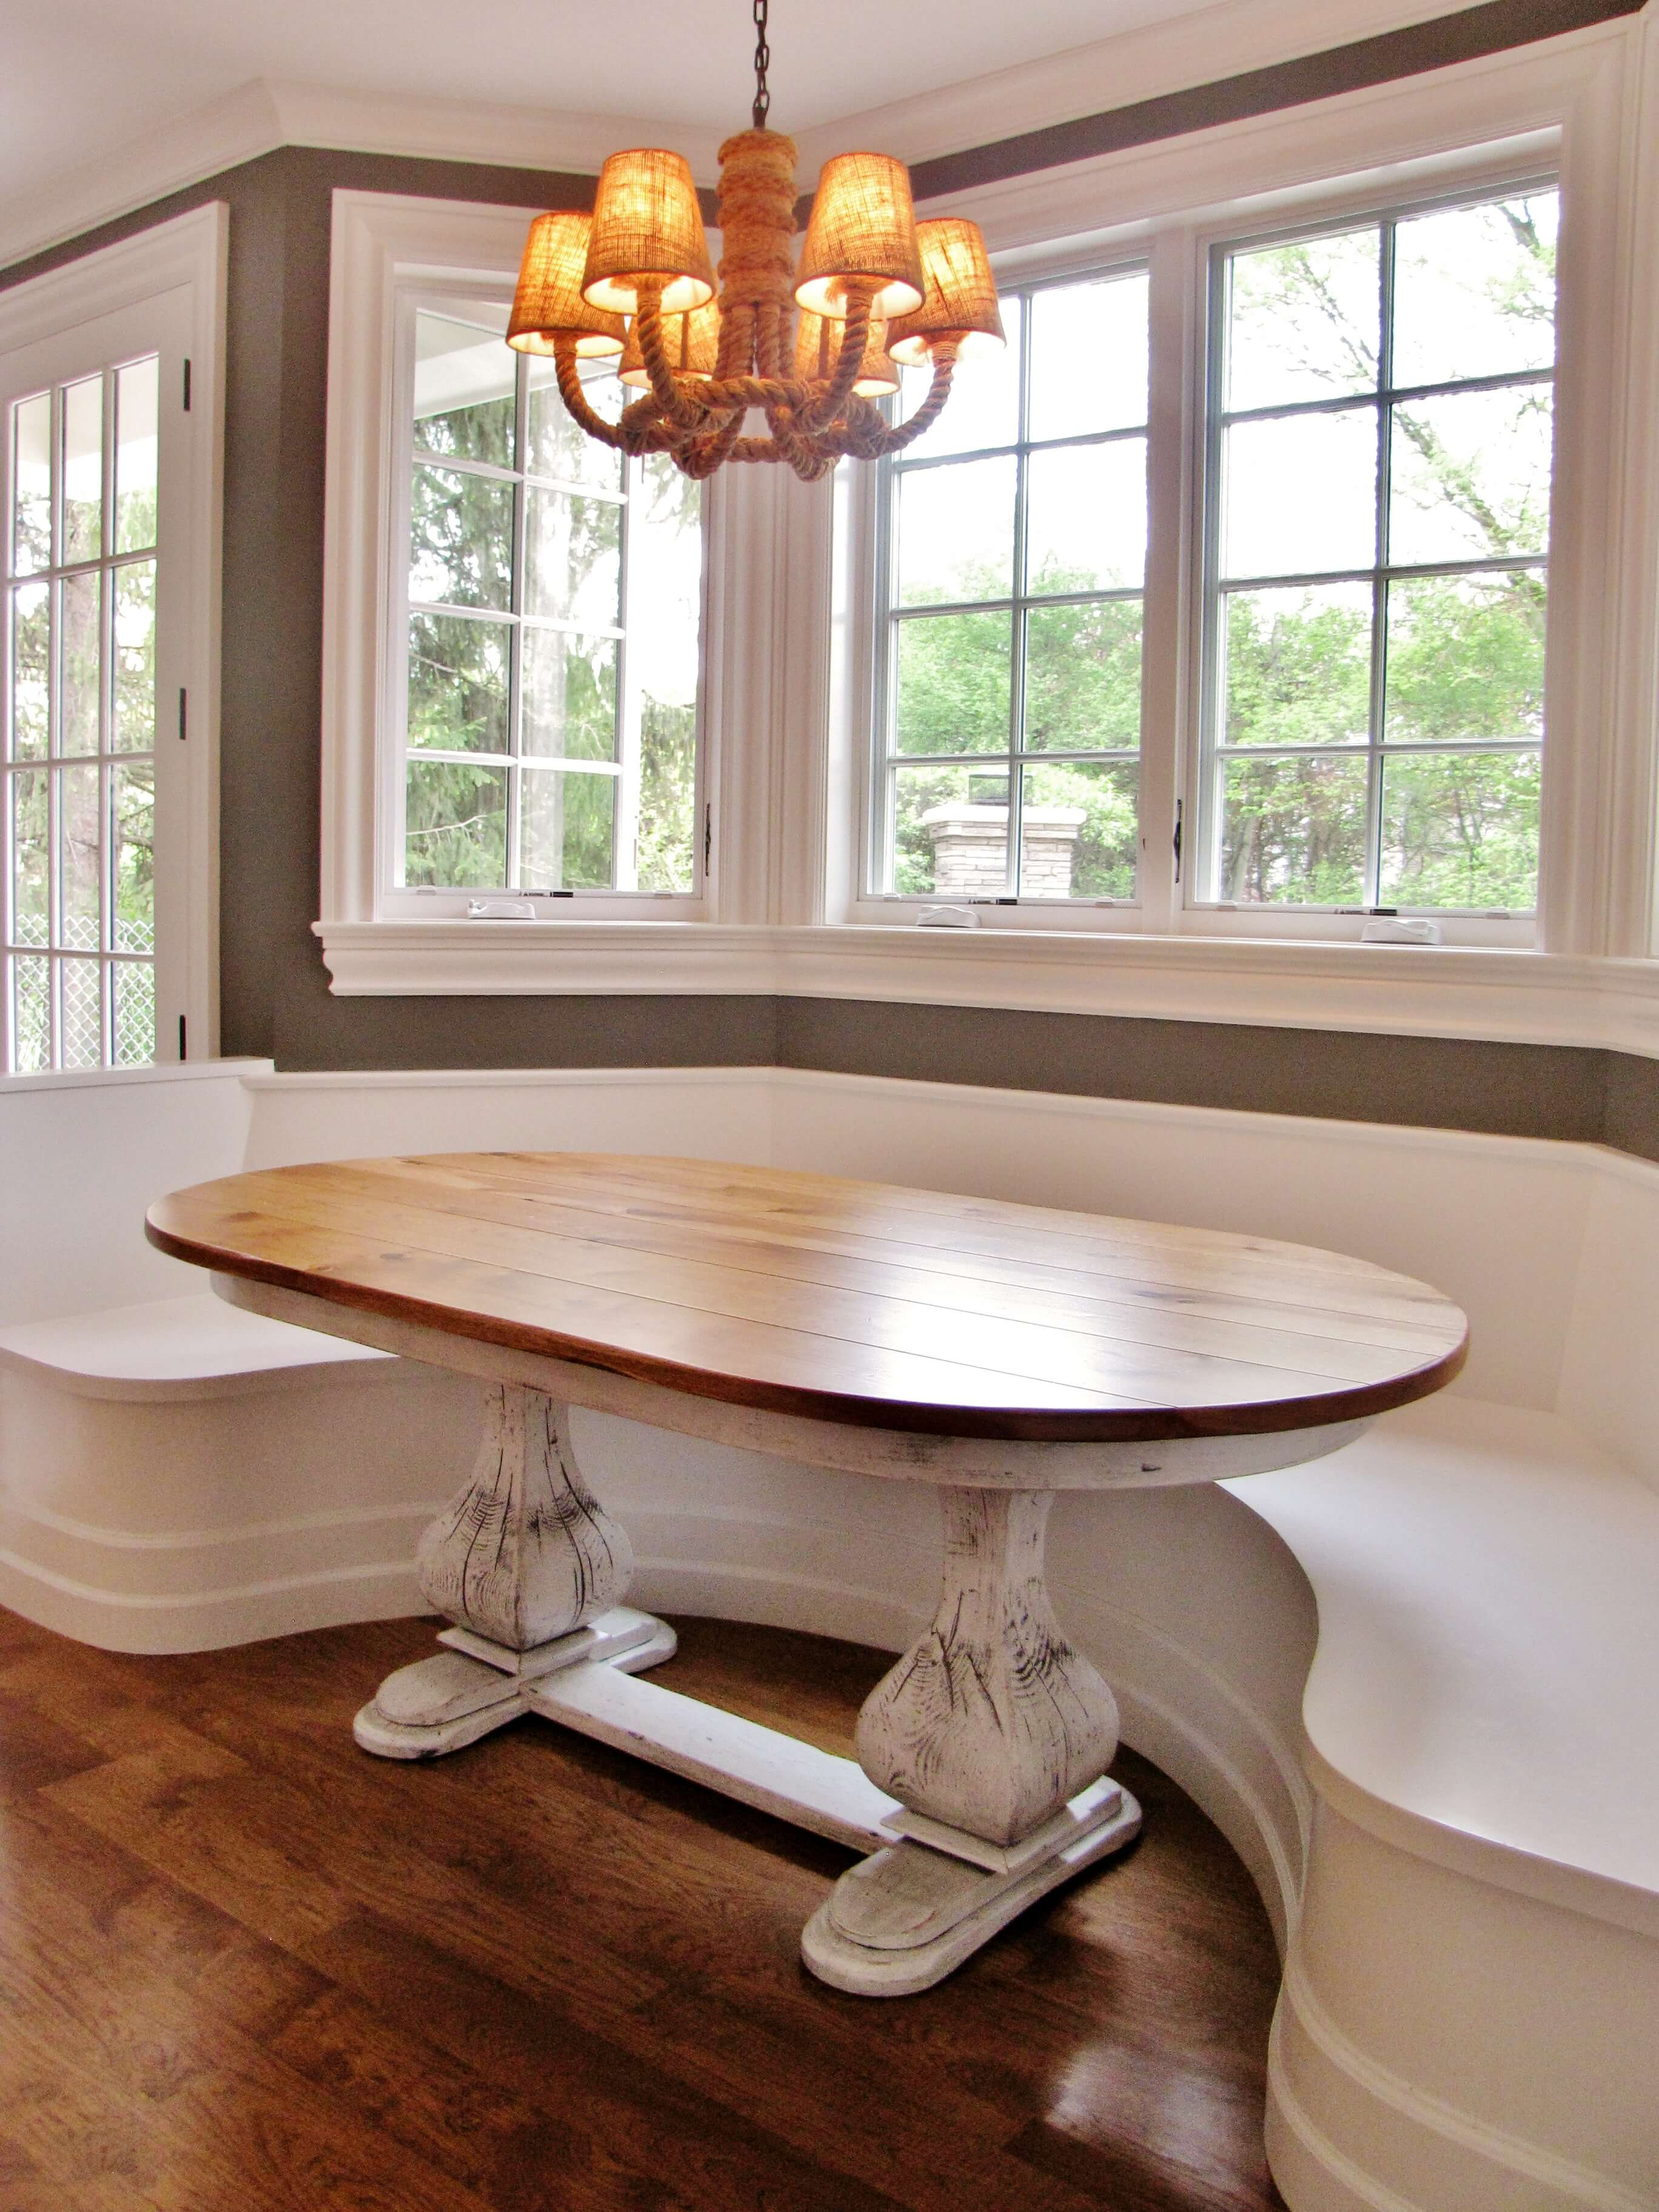 Whitewashed oval tables with a built-in bench.